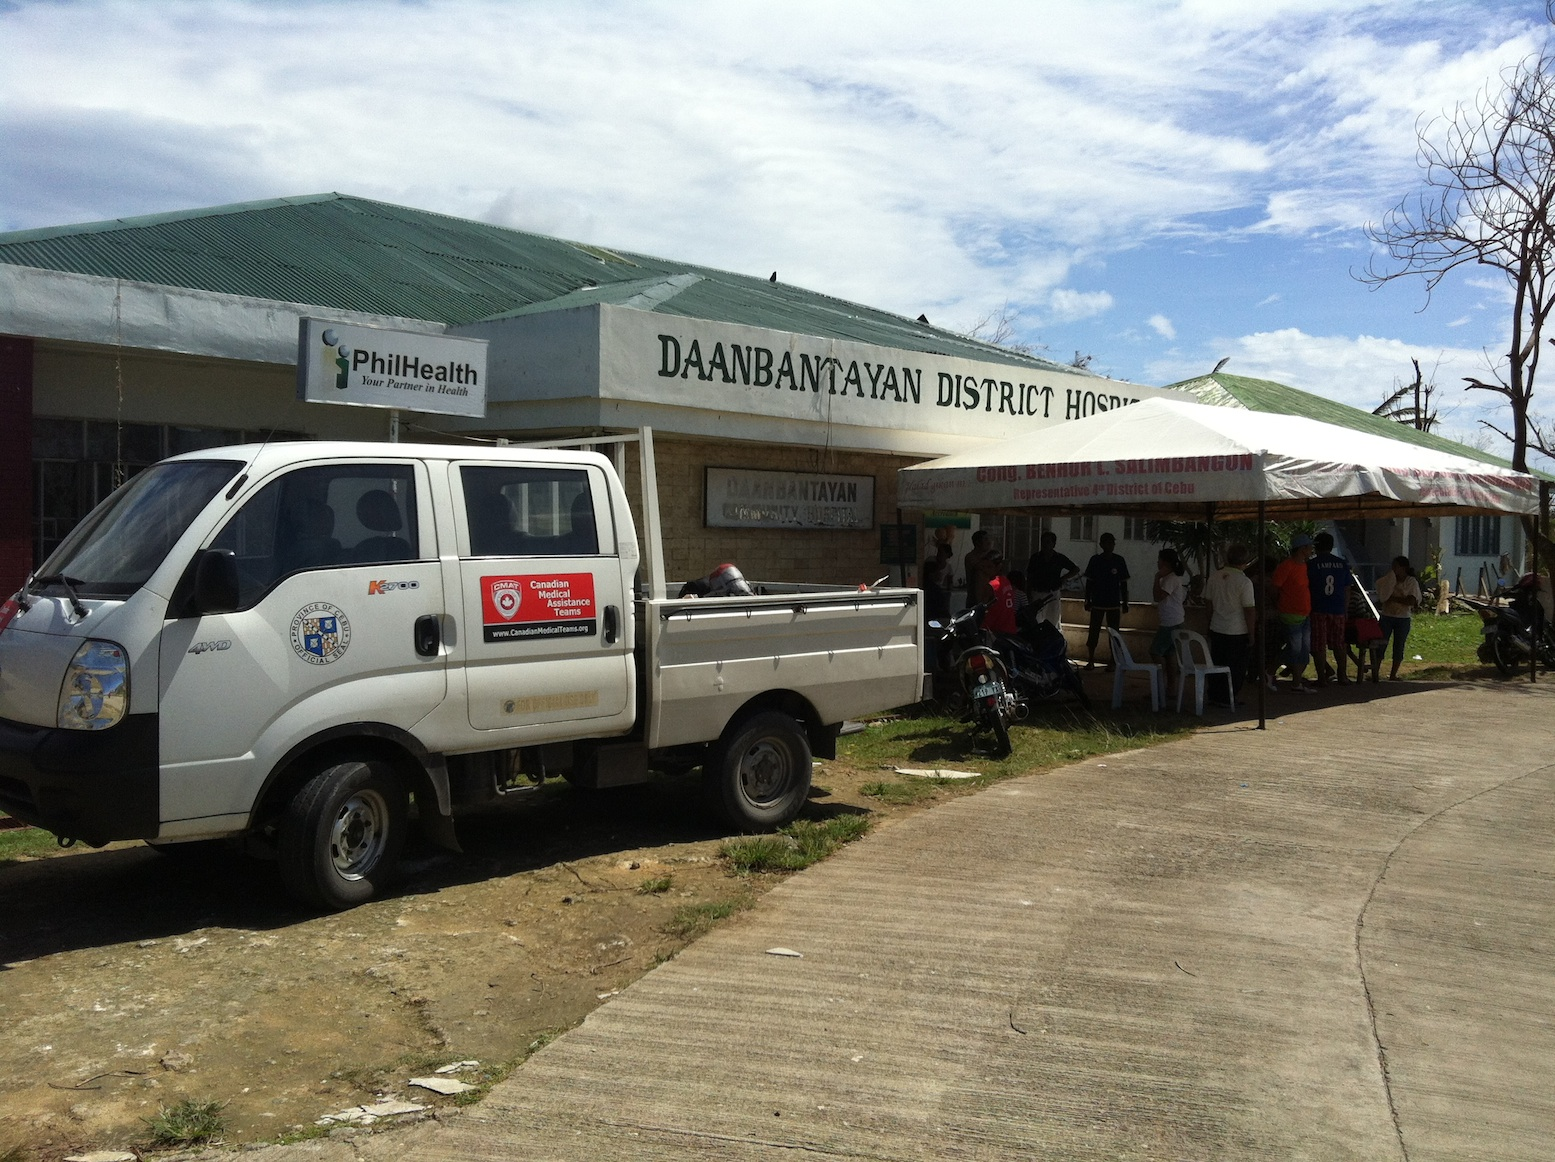 The CMAT Assessment team stops at Daanbantayan District Hospital in northern Cebu, to assess the infrastructure and damage caused by Typhoon Yolanda (Haiyan)